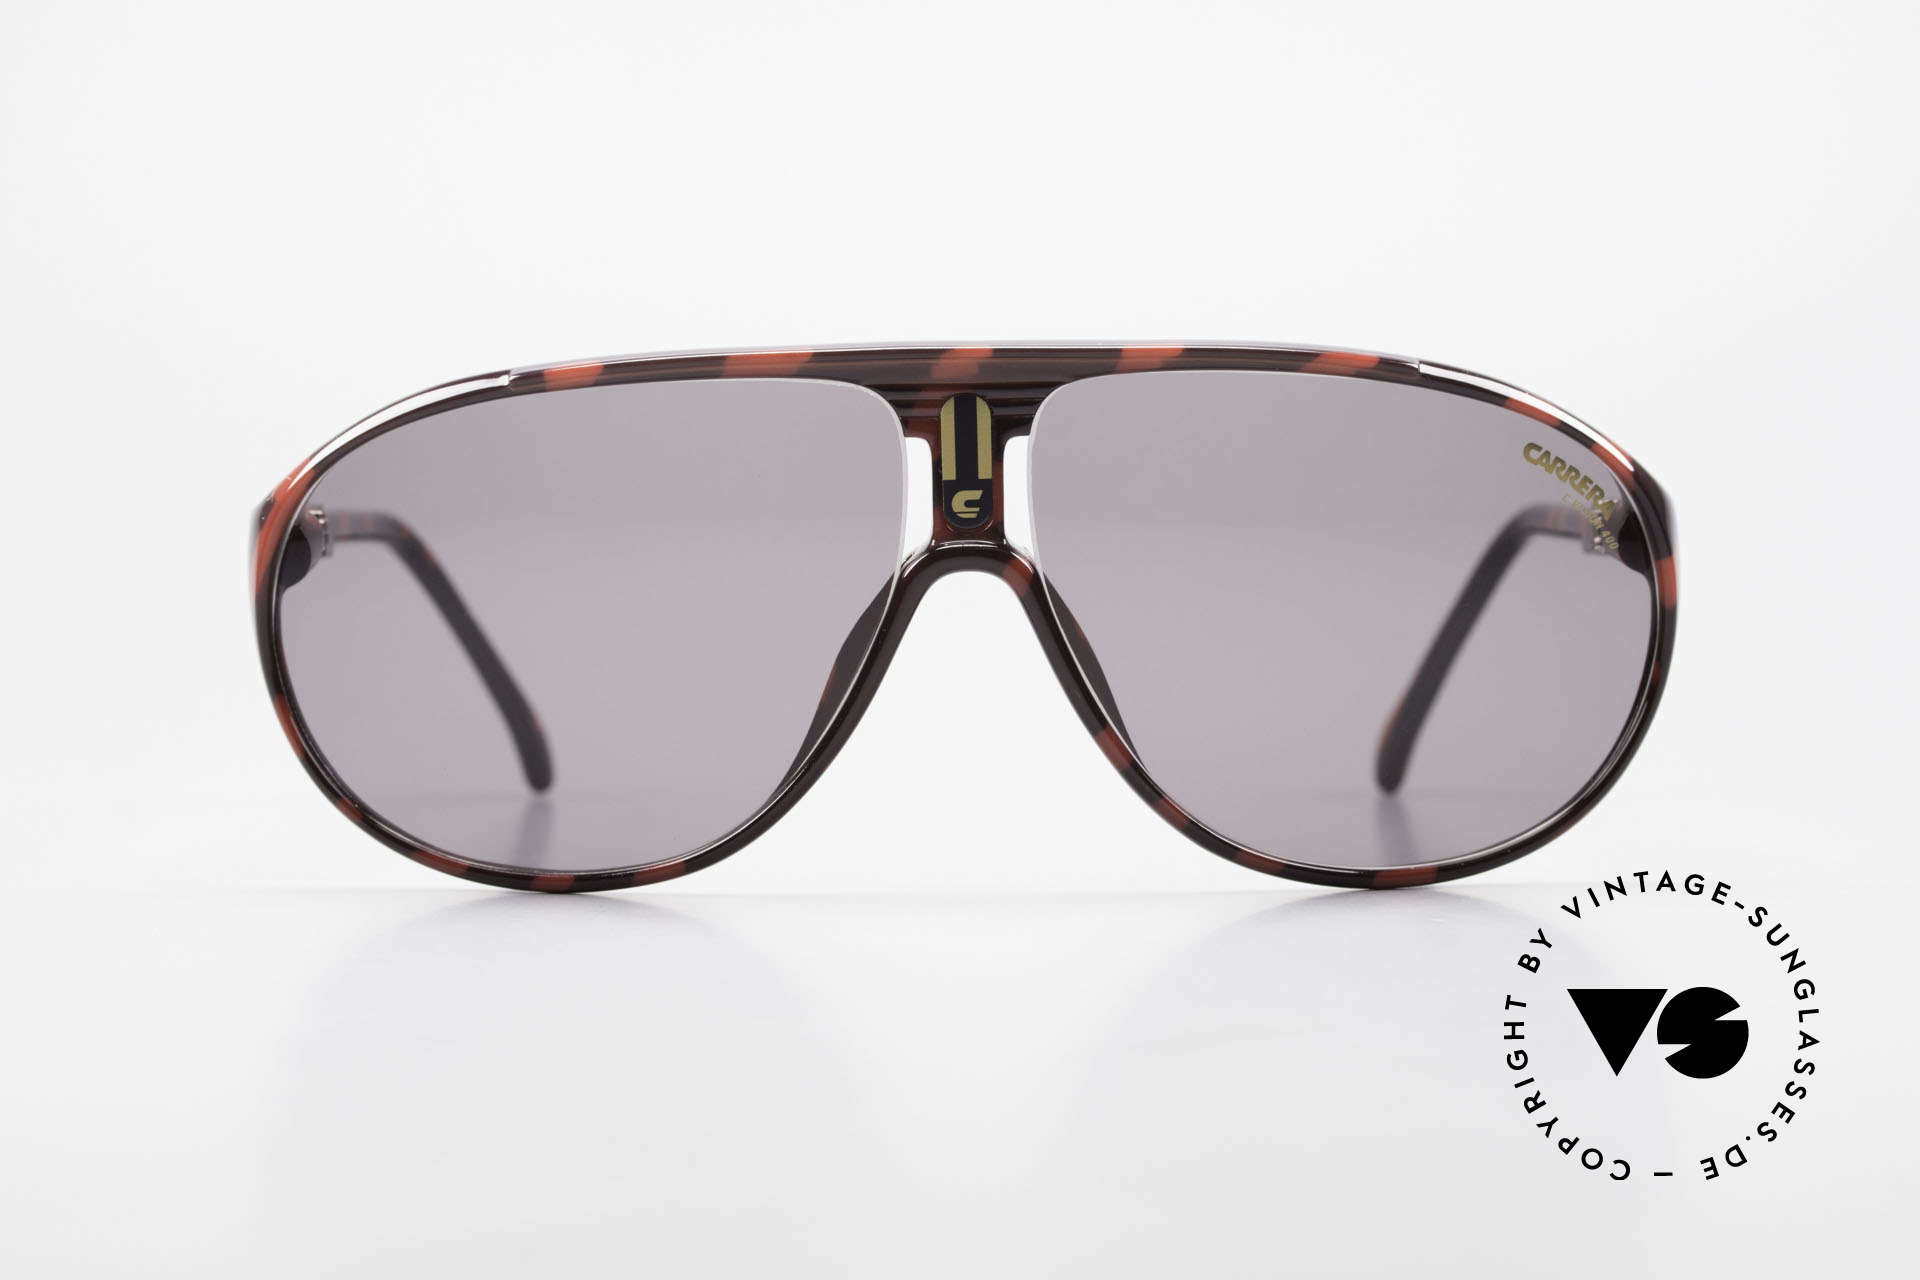 Carrera 5412 80's Sunglasses Optyl Sport, frame made of durable and long-living OPTYL material, Made for Men and Women